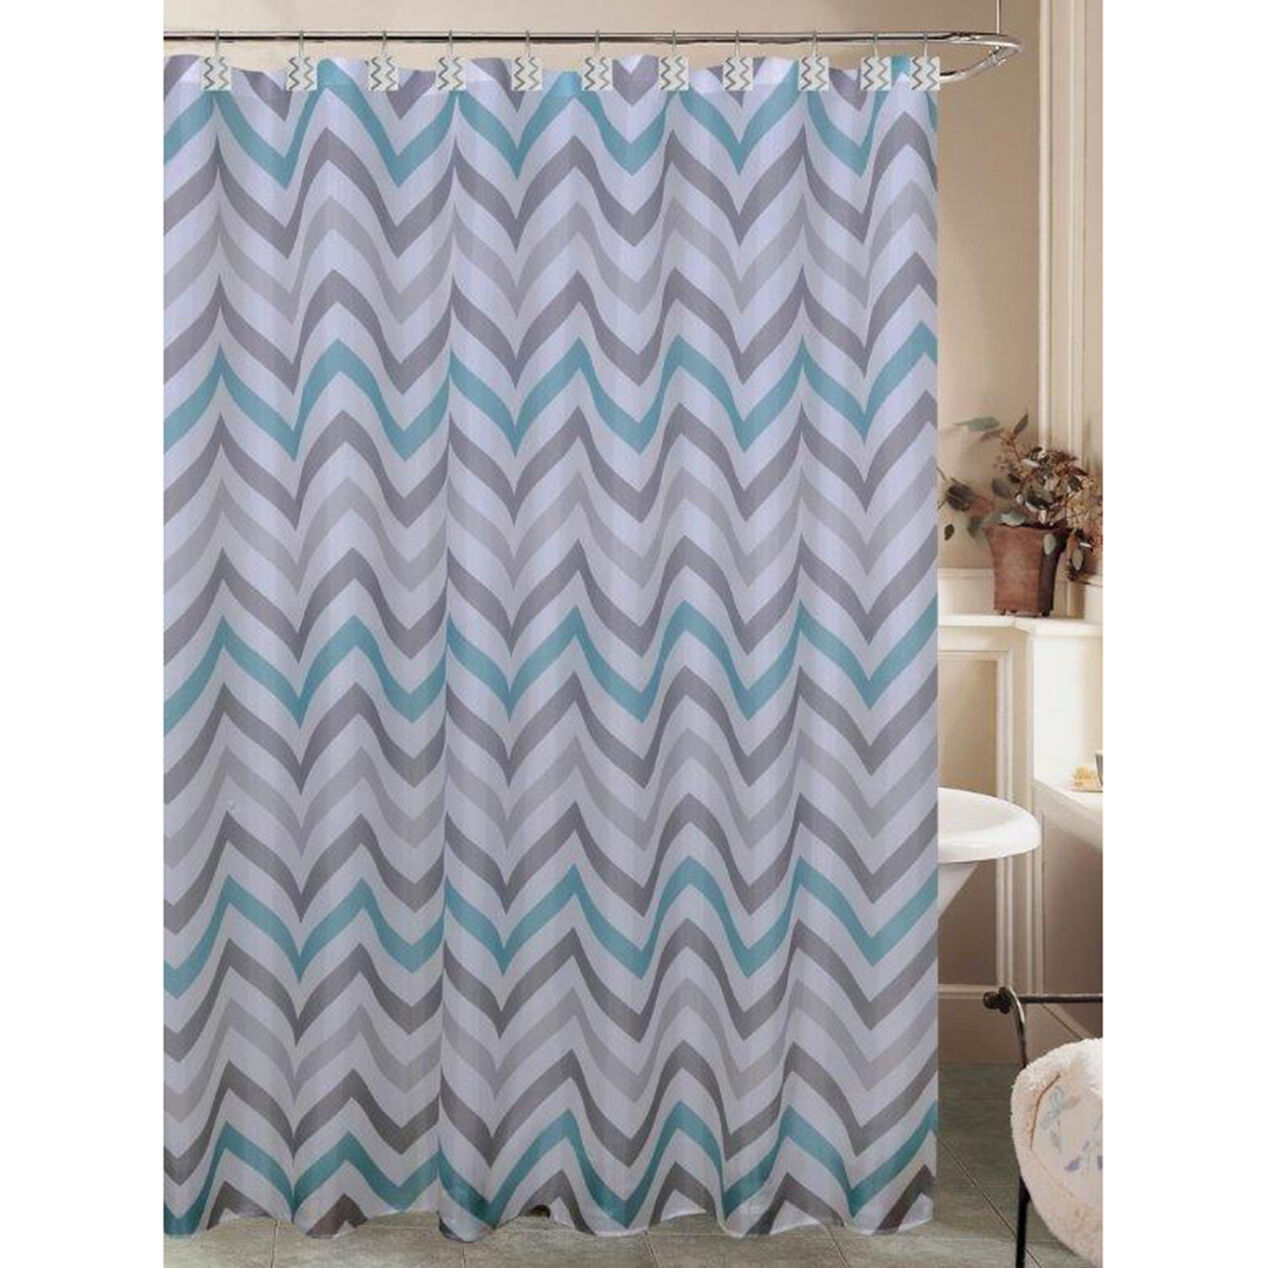 Solid teal shower curtain - Gray Chevron Shower Curtainplain Gray Chevron Shower Curtain N And Inspiration